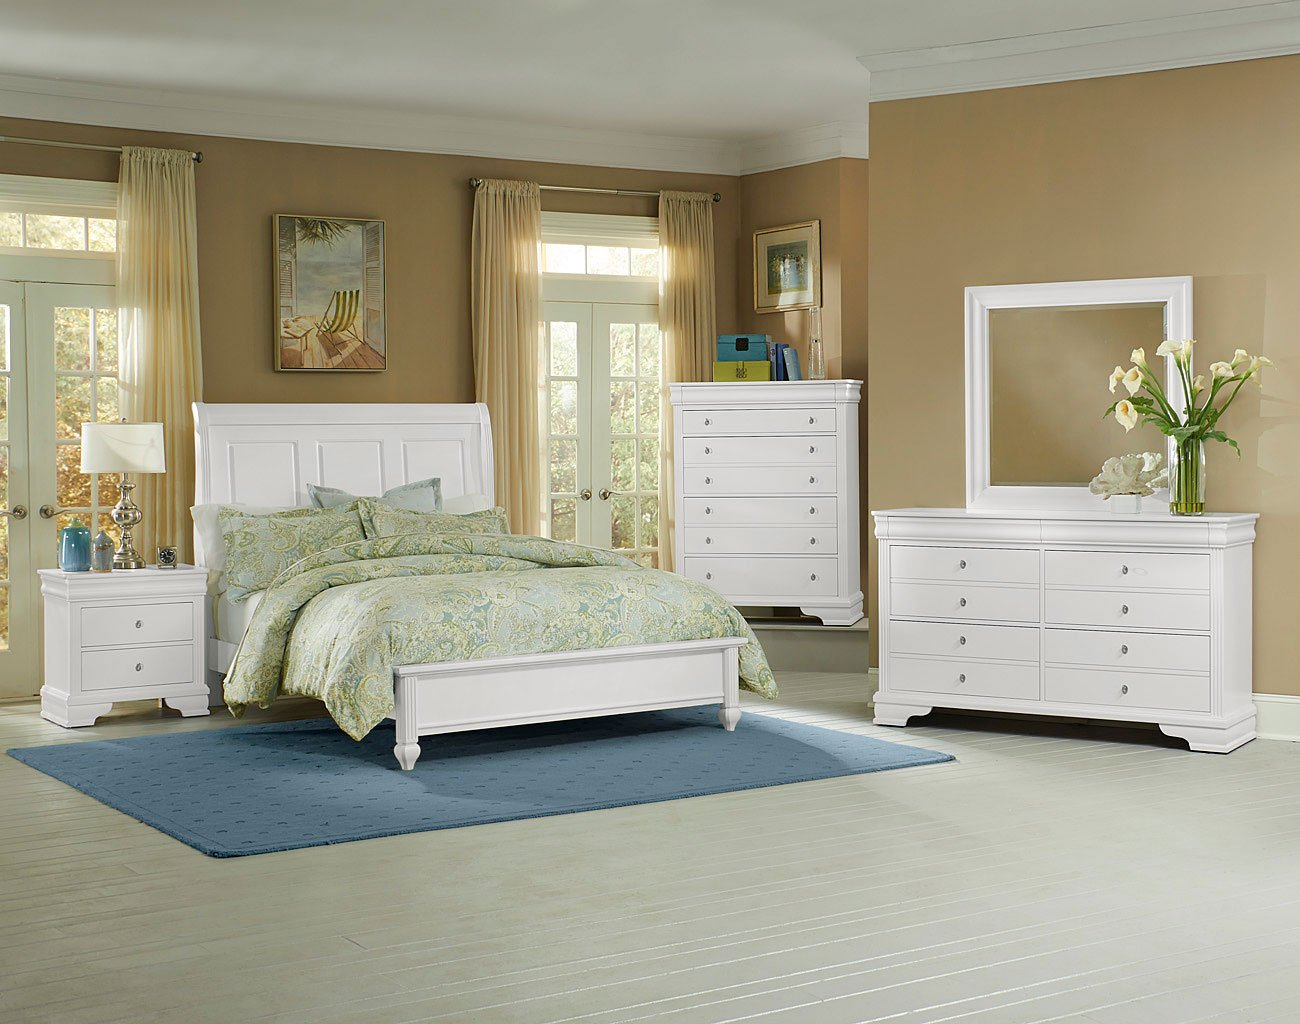 French Market Low Profile Bedroom Set (White)